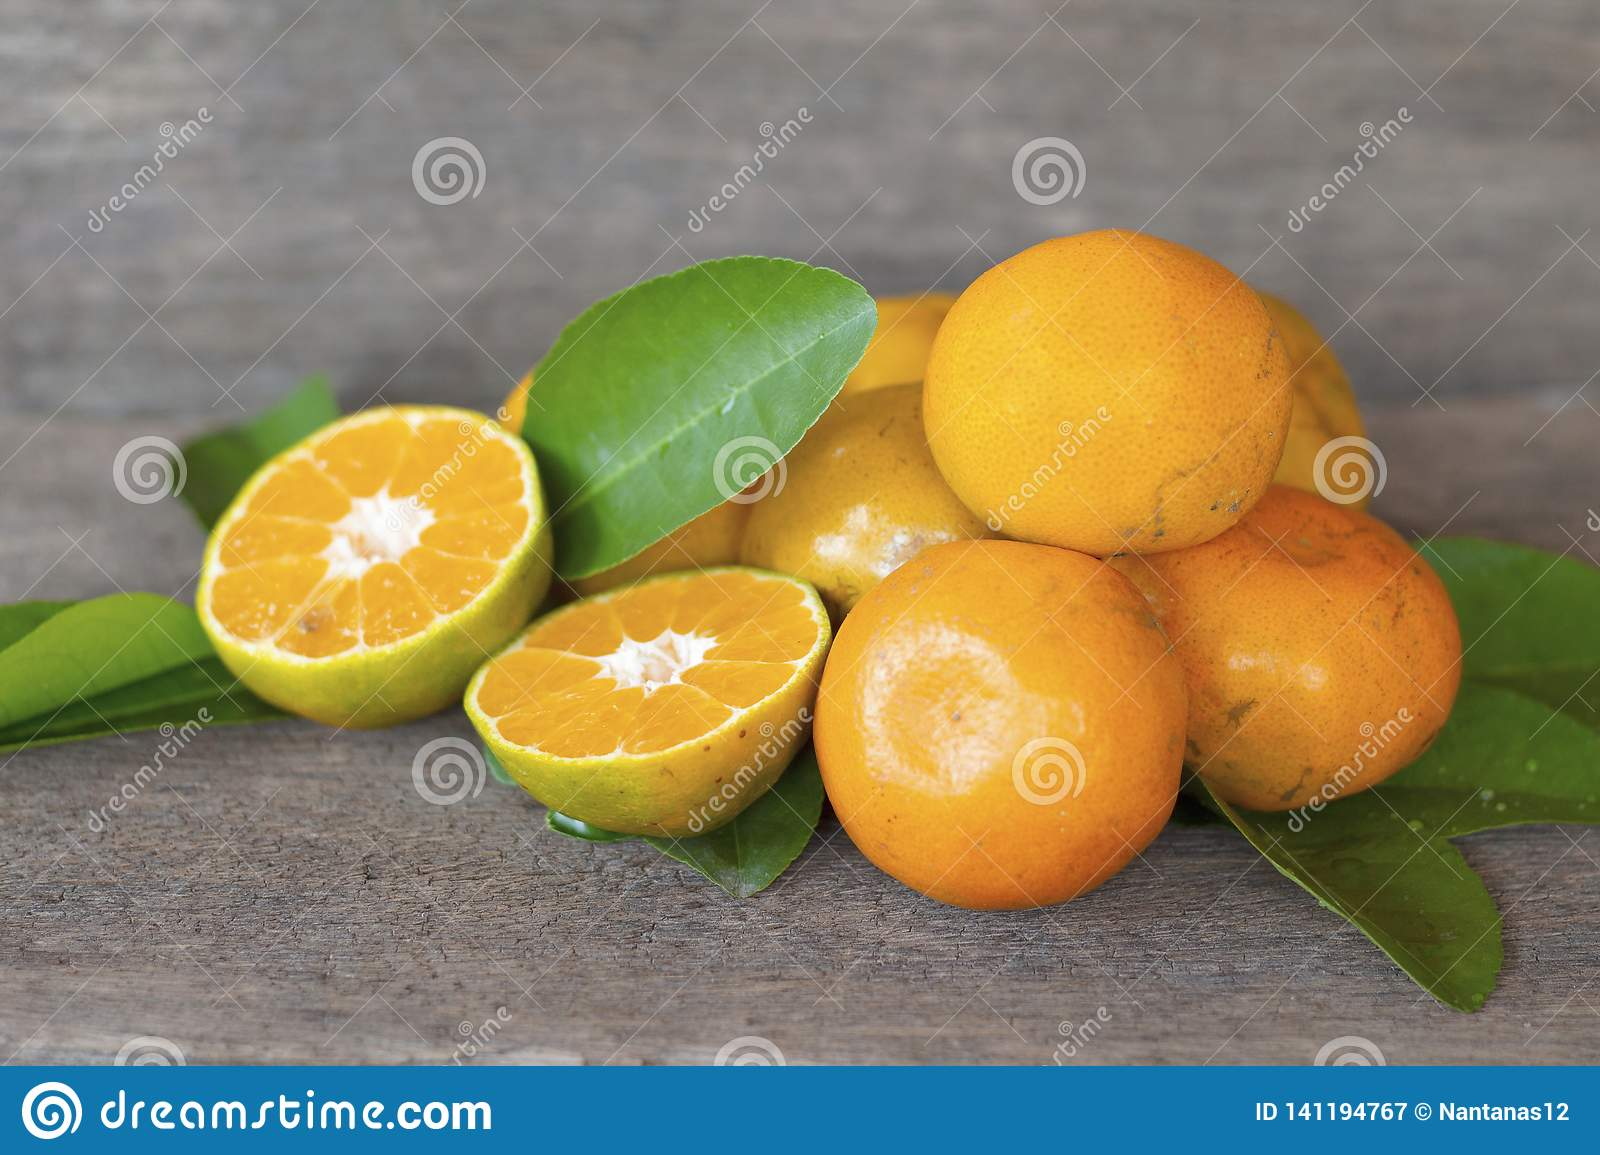 Healthy fruit oranges placed on old wooden floors